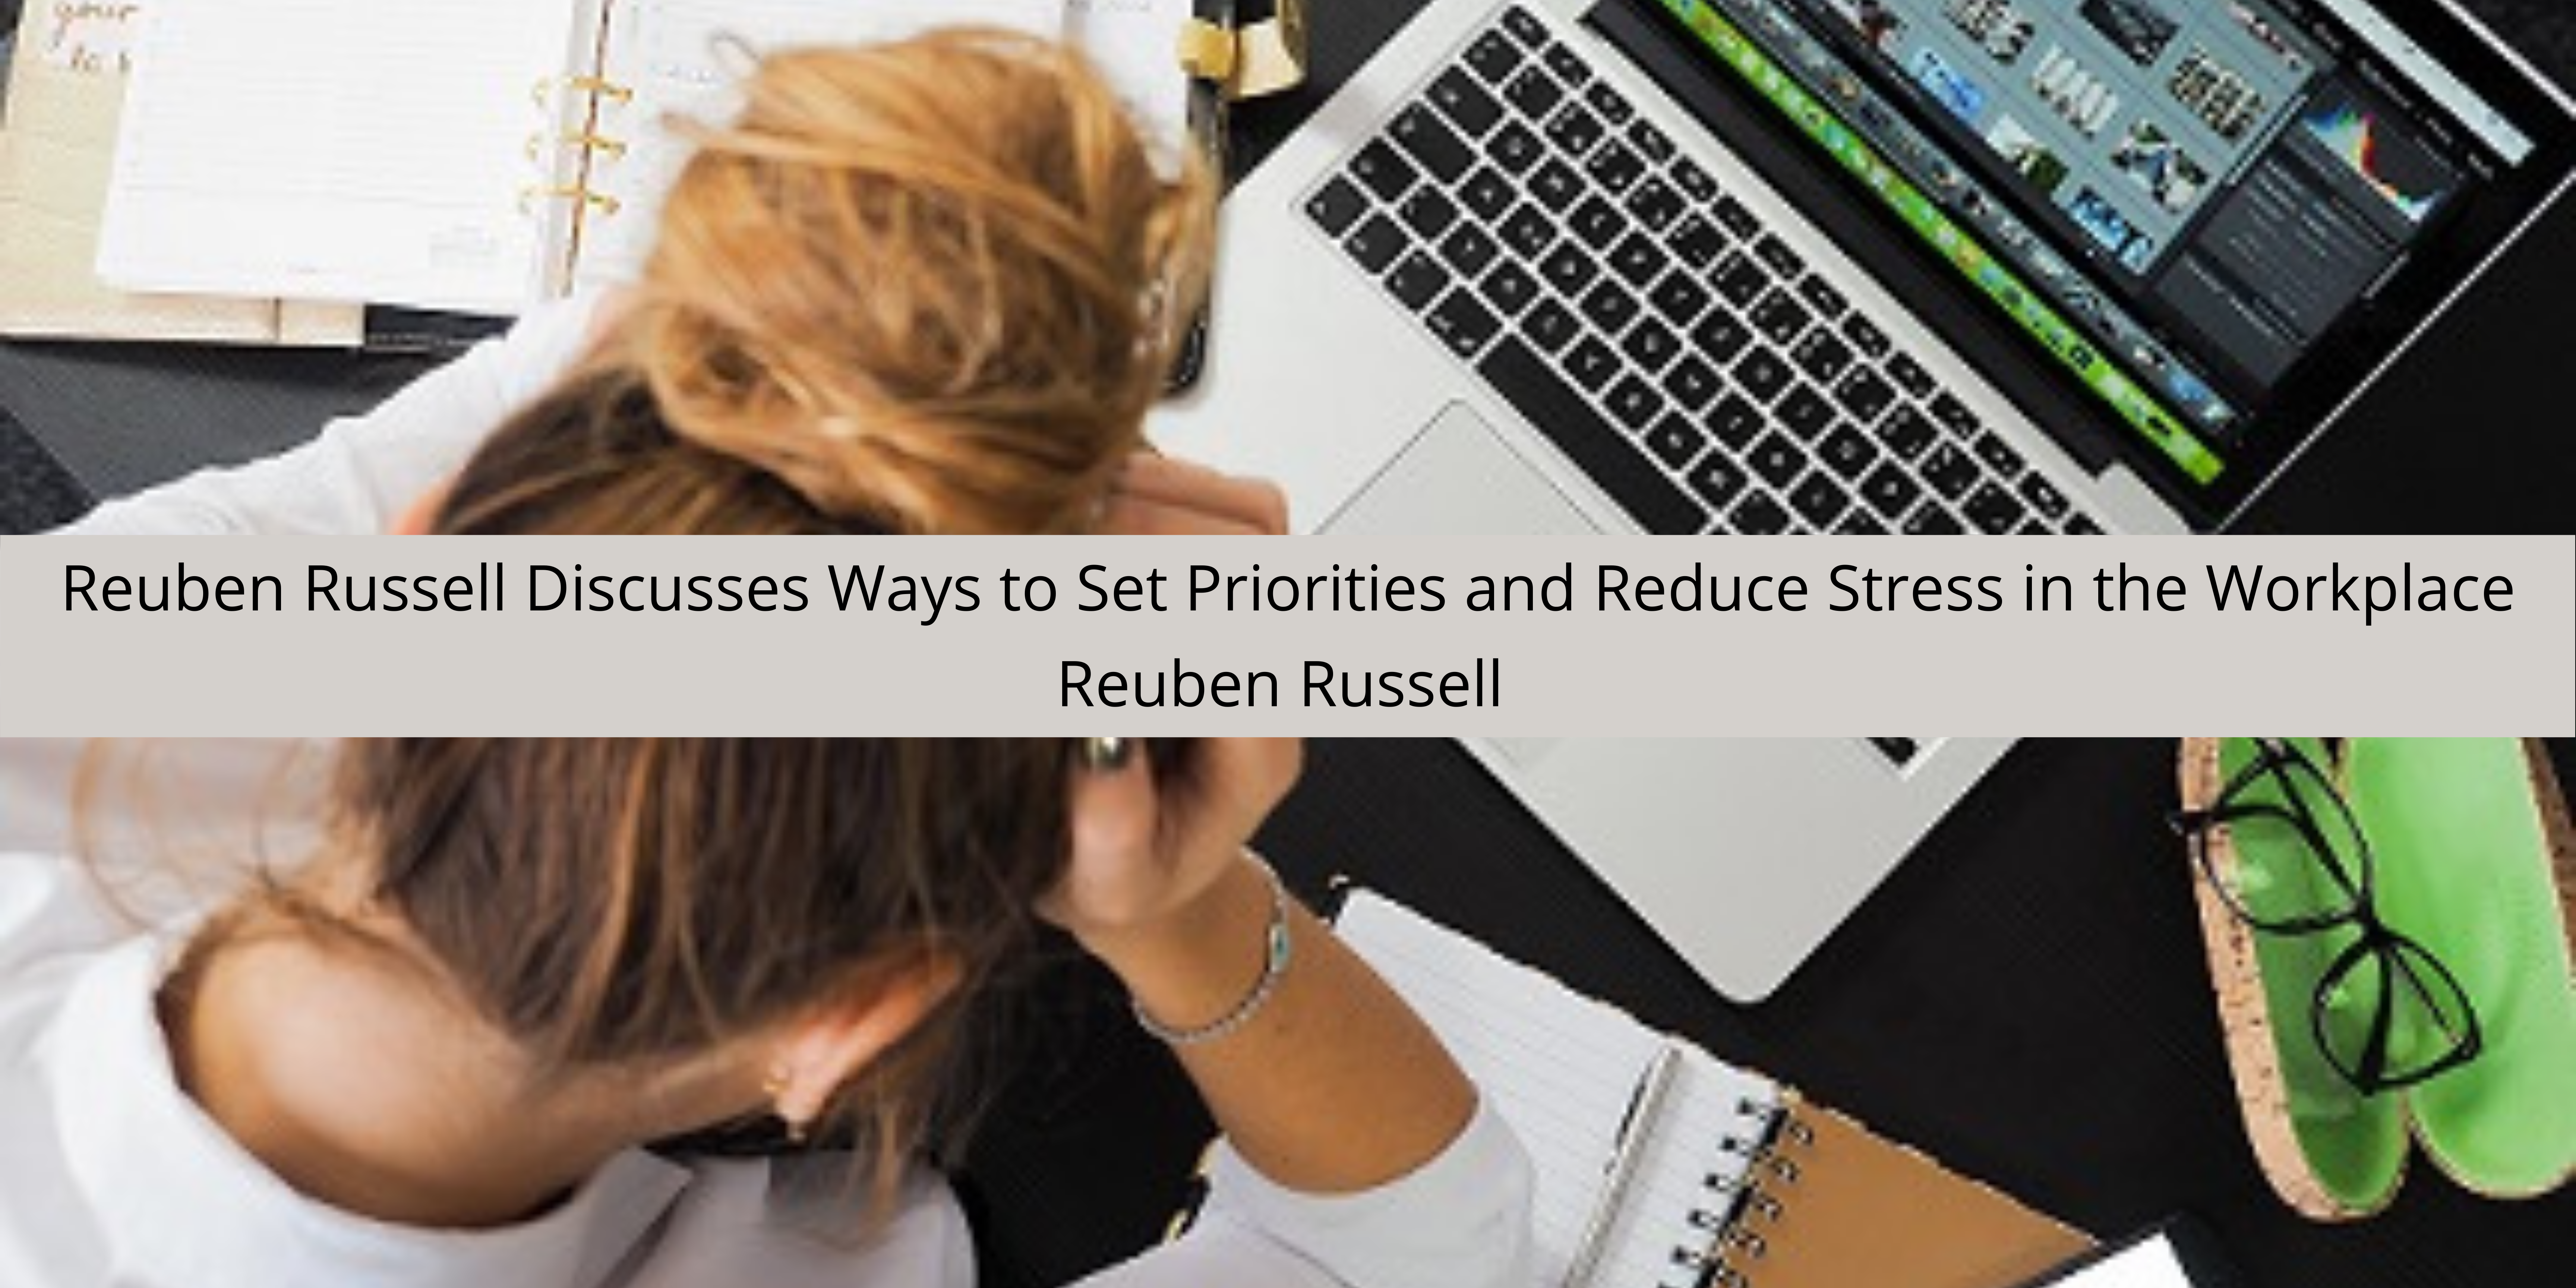 Reuben Russell Discusses Ways to Set Priorities and Reduce Stress in the Workplace